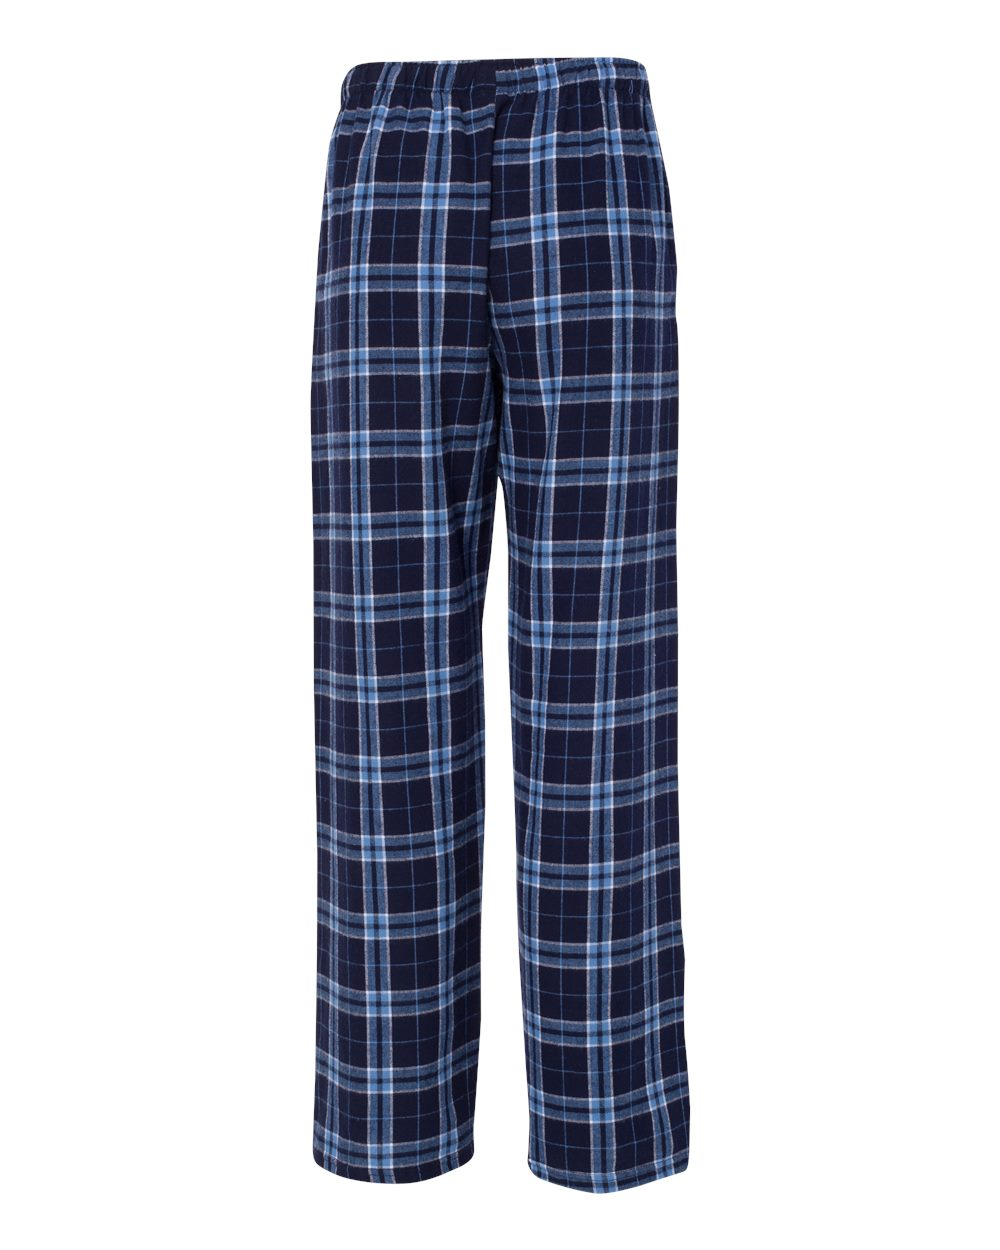 Boxercraft-Unisex-Flannel-Pants-With-Pockets-Pajama-Pants-F20-up-to-2XL thumbnail 25